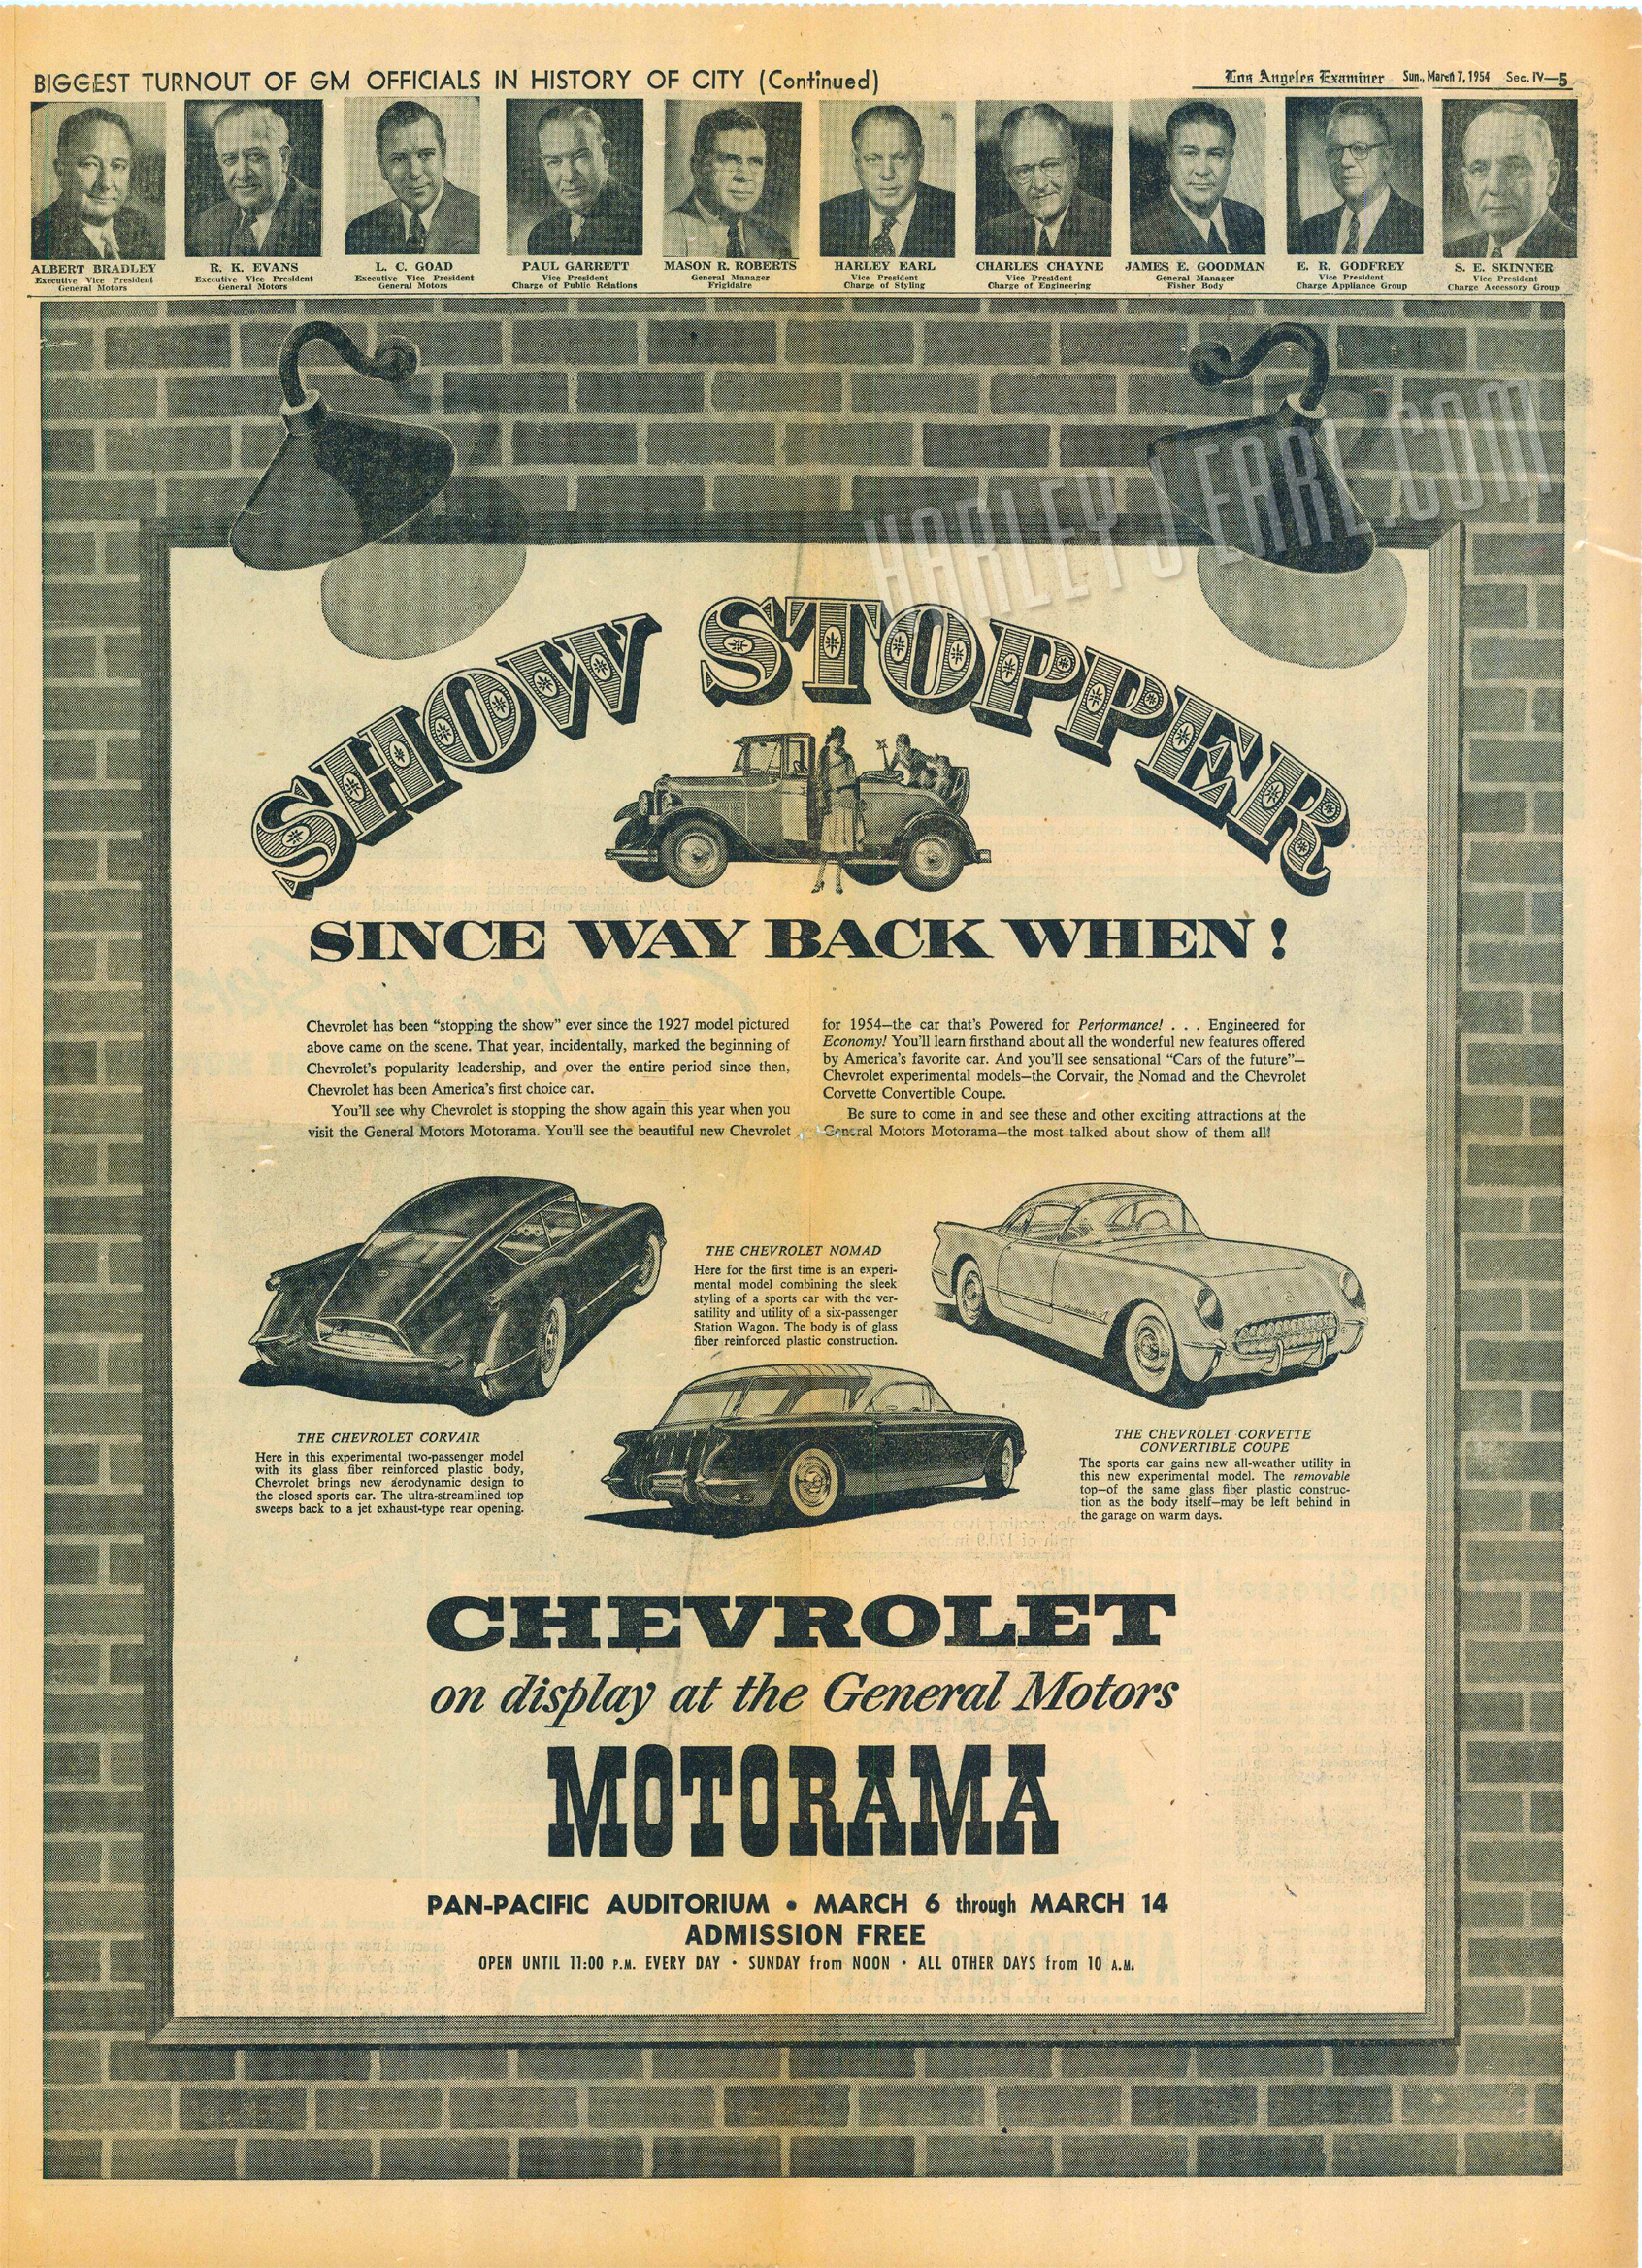 """This full-page ad in the  Los Angeles Examiner  demonstrates HJE's first Chevrolet car design for the bowtie division back in '27, with flapper girls, and 26-years later he's releasing modern well-engineered vehicles most Americans find, """"drop-dead gorgeous"""" and are a quantum leap from any production cars made in the 1920s!"""